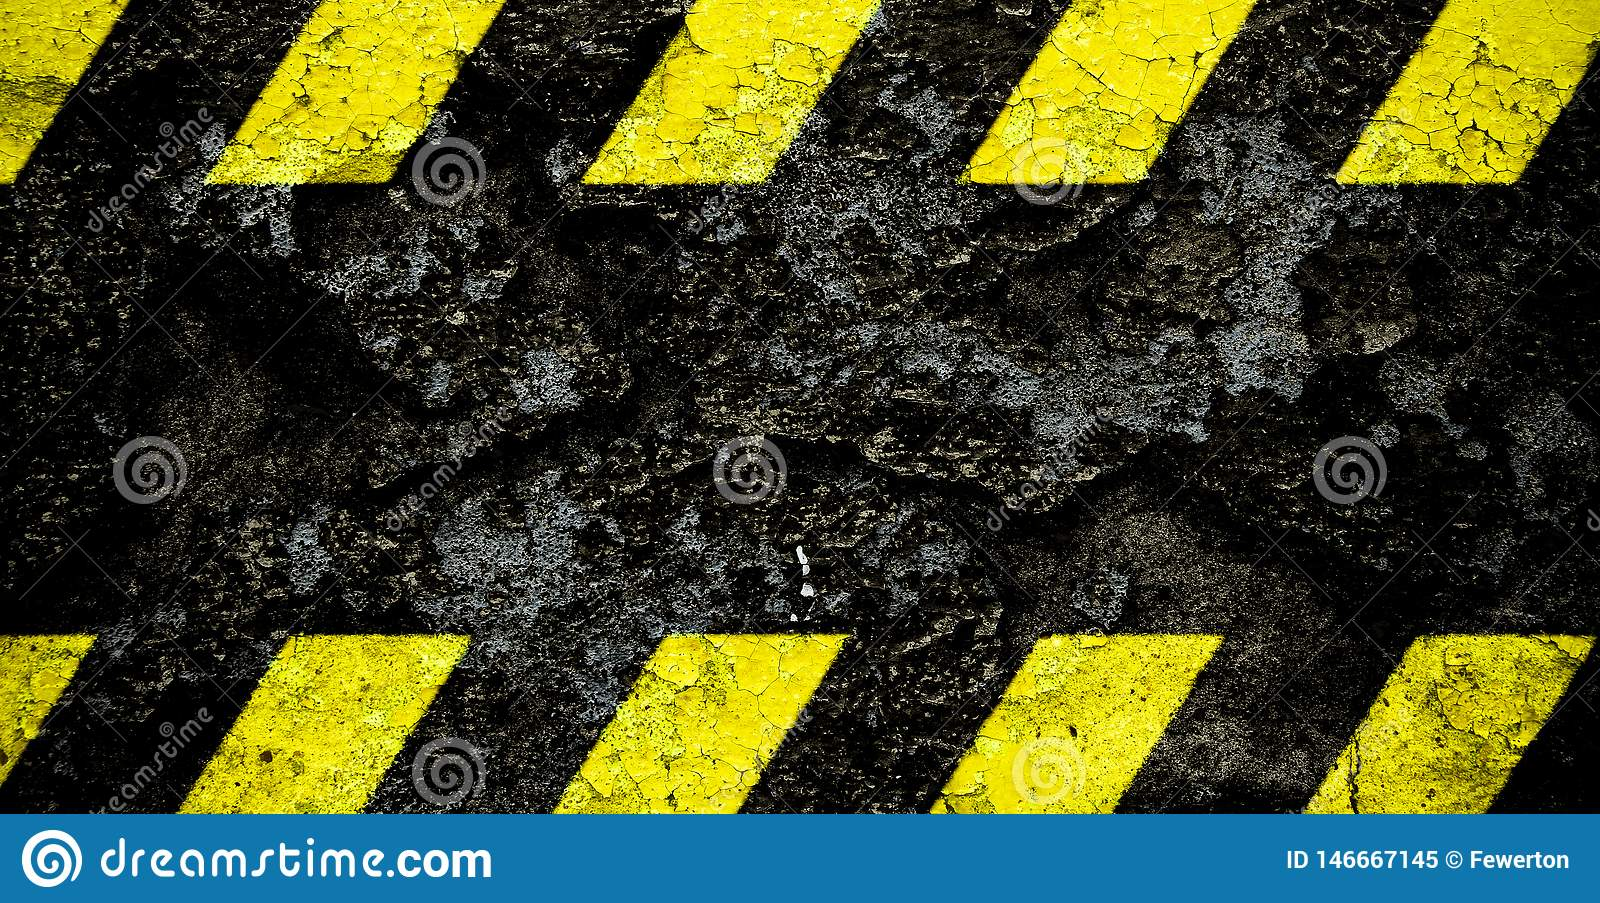 Warning danger sign yellow and black stripes pattern with black area over concrete cement wall facade peeling cracked paint.